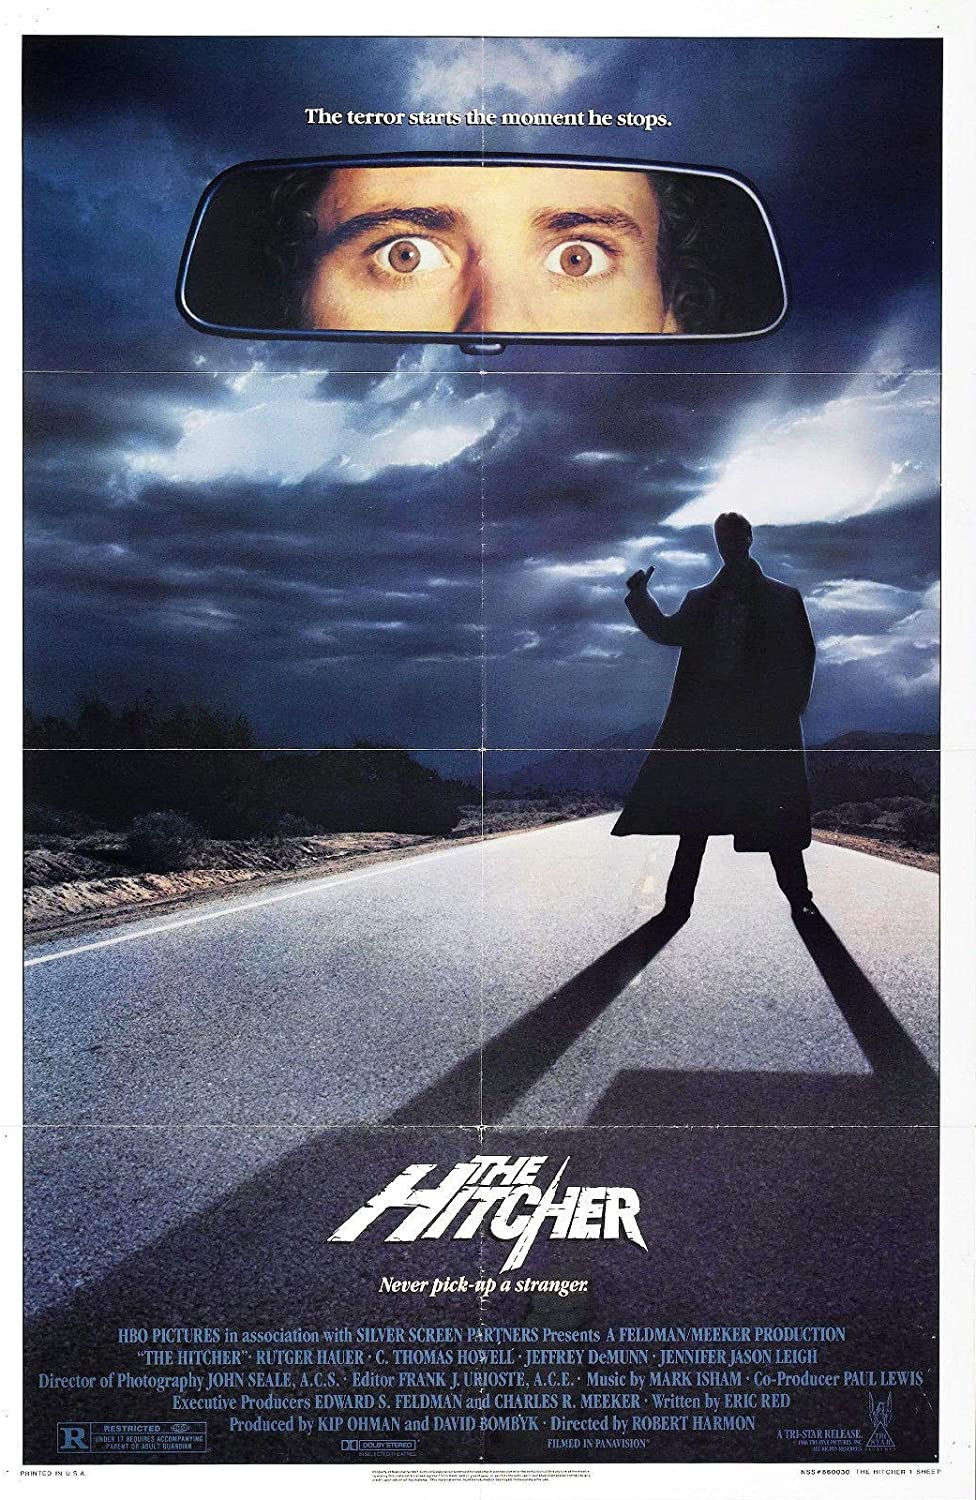 72836 The Hitcher 1986 Movie Decor Wall 32x24 Poster Print